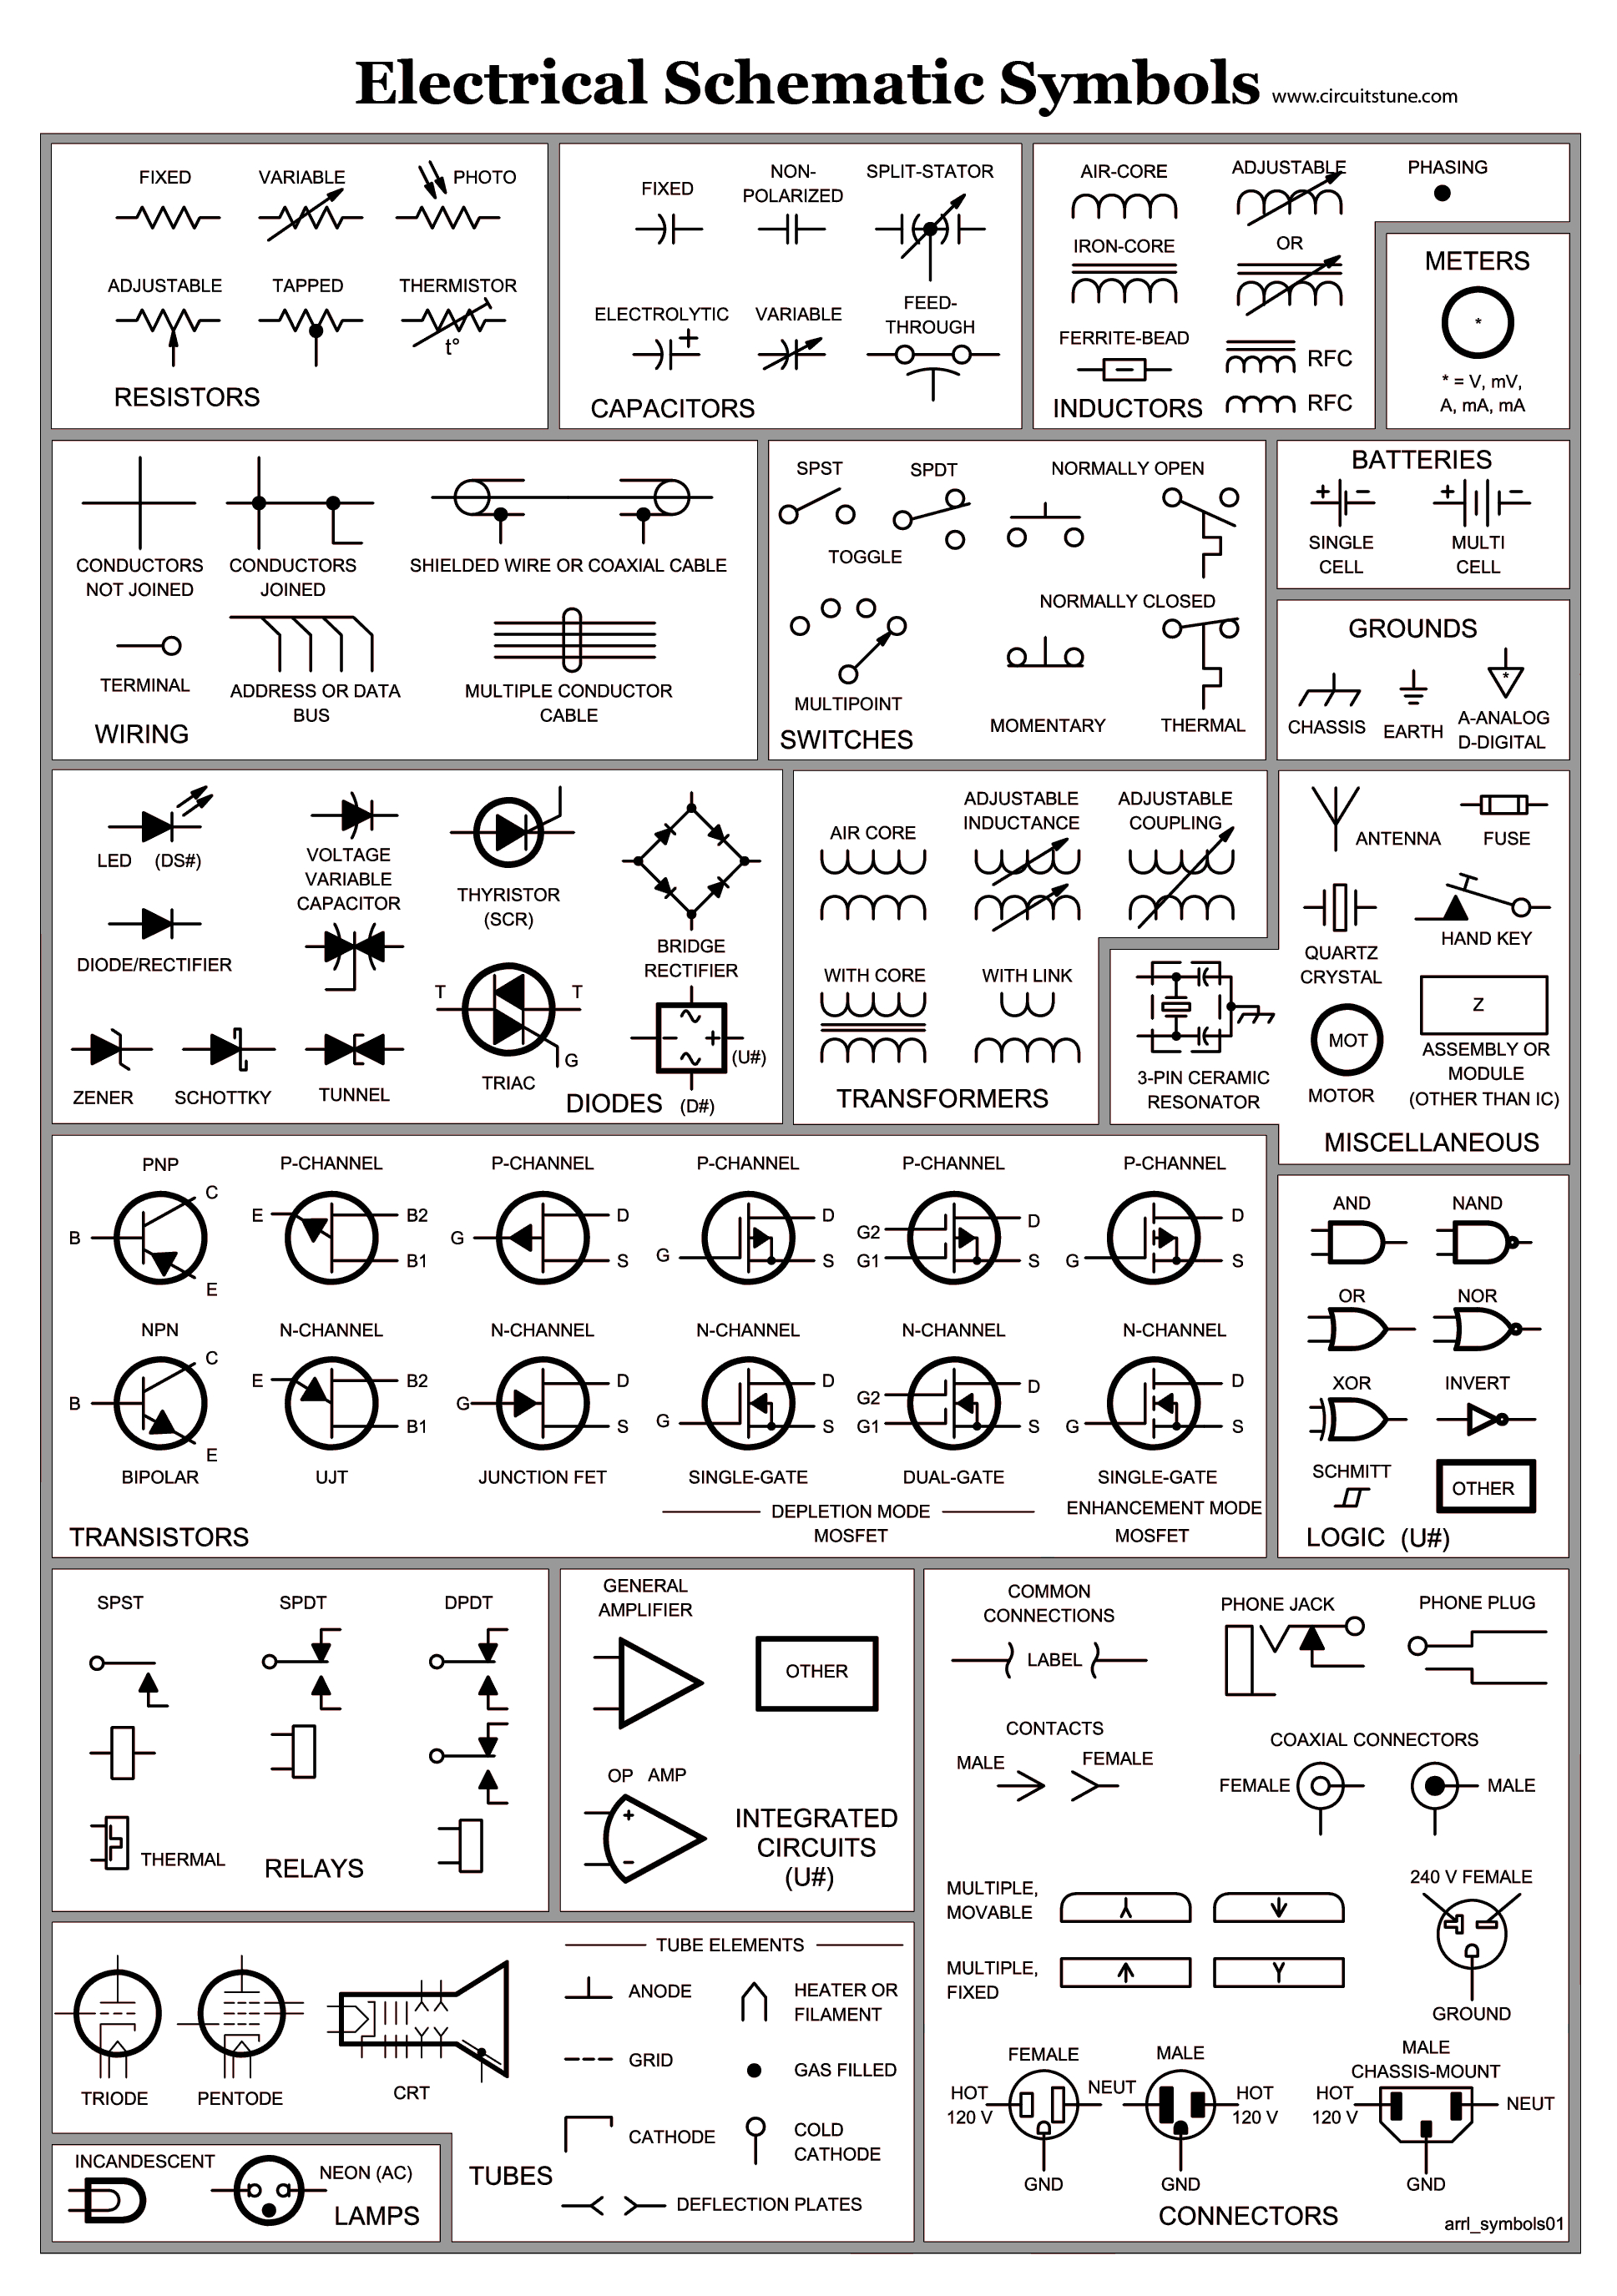 Electrical Schematic Symbols | Skinsquiggles | Pinterest - Wiring Diagram Symbols